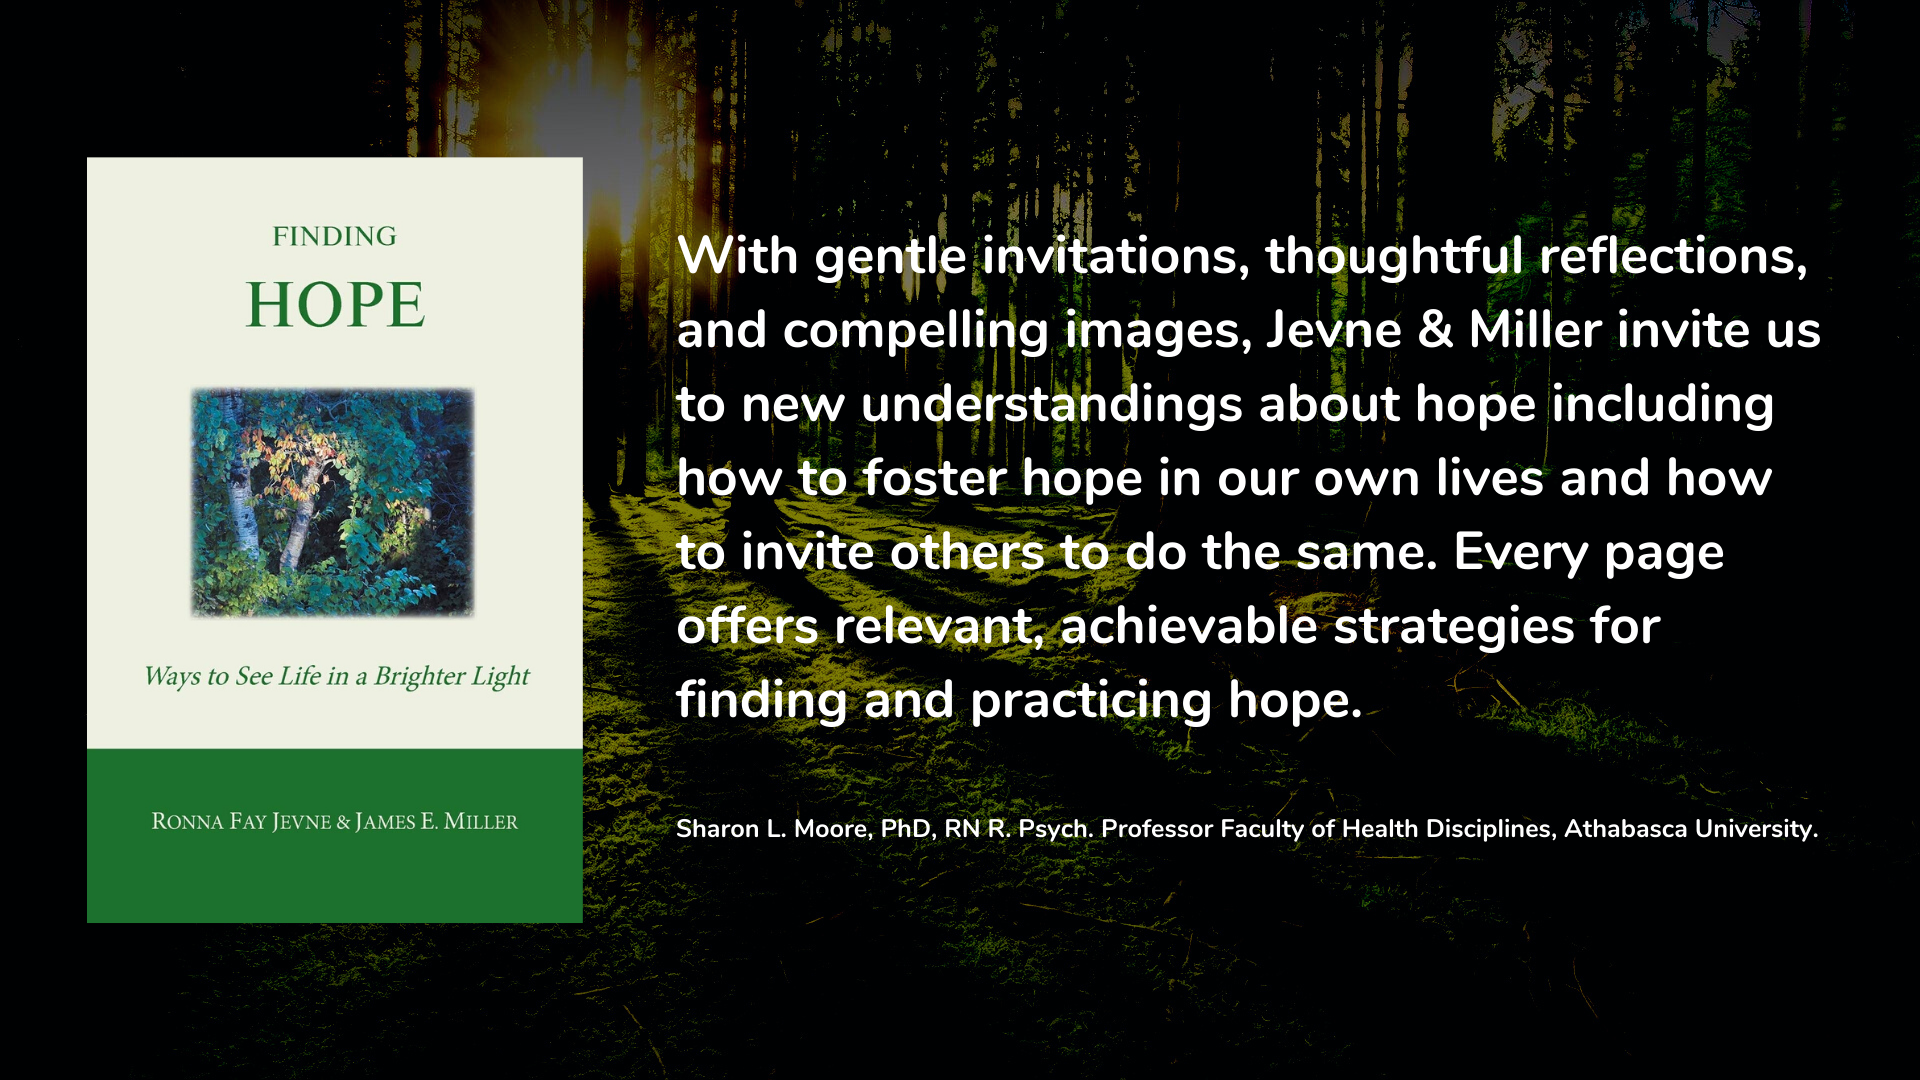 Finding Hope: Ways of Seeing Life in a Brighter Light